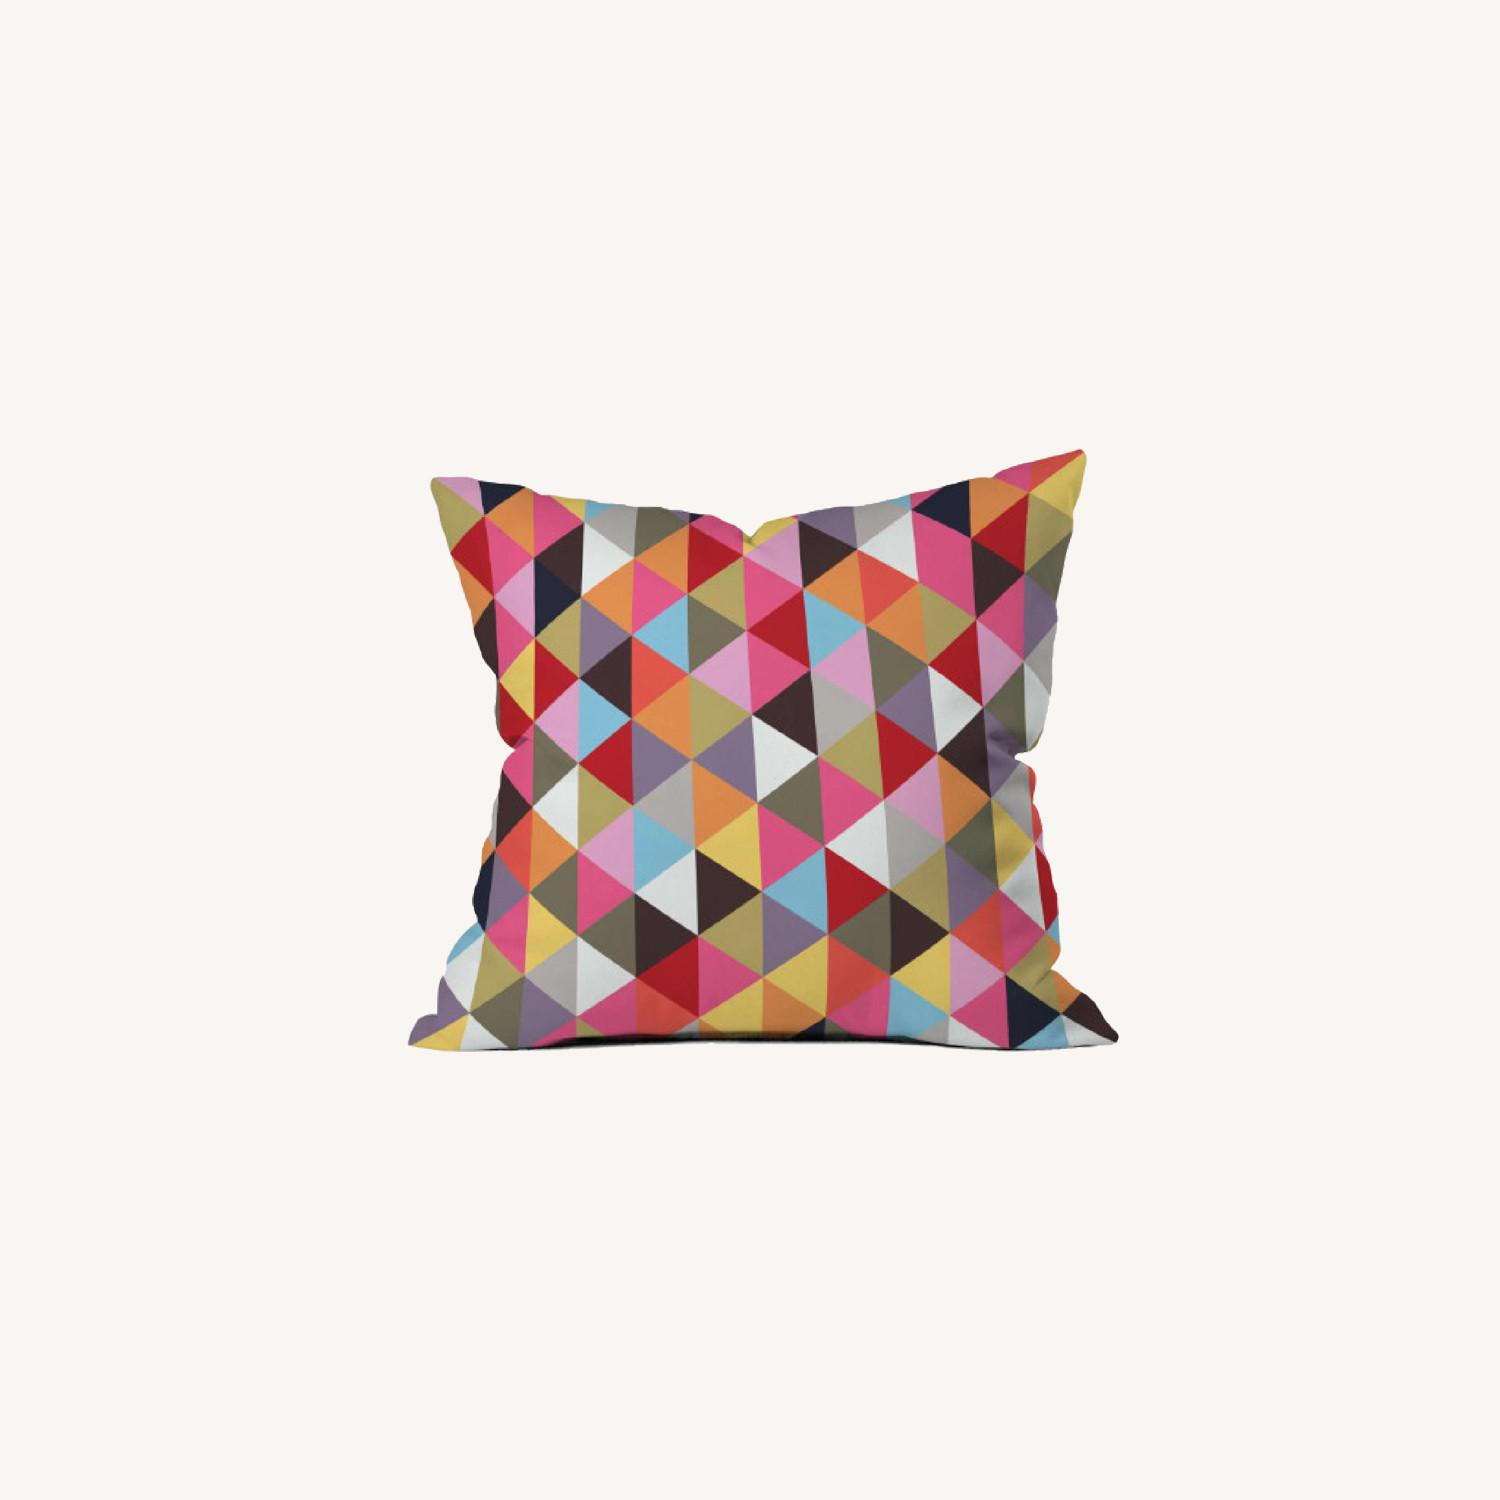 Deny Designs Throw Pillow - image-0